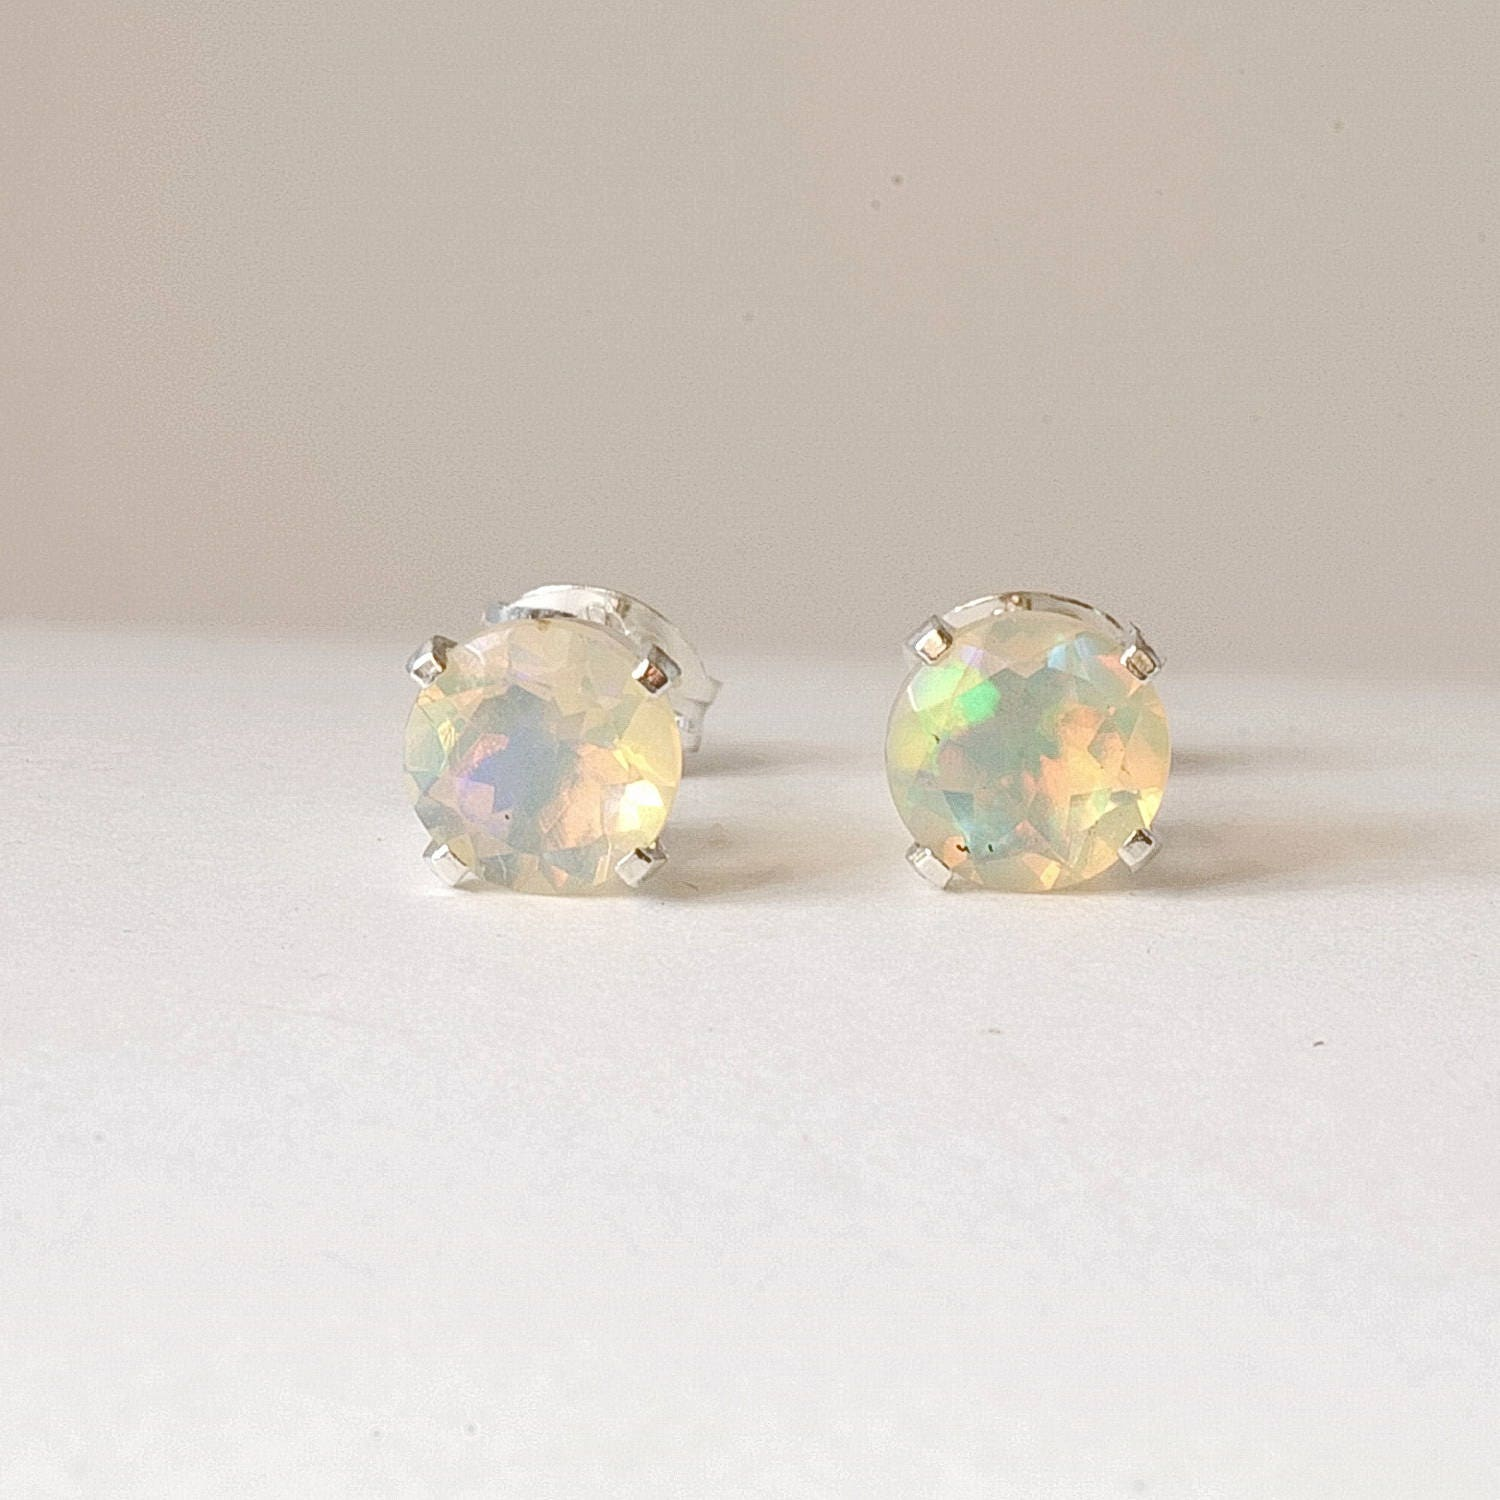 opal laura stores si zm p stage ha stud genuine earrings b ashley